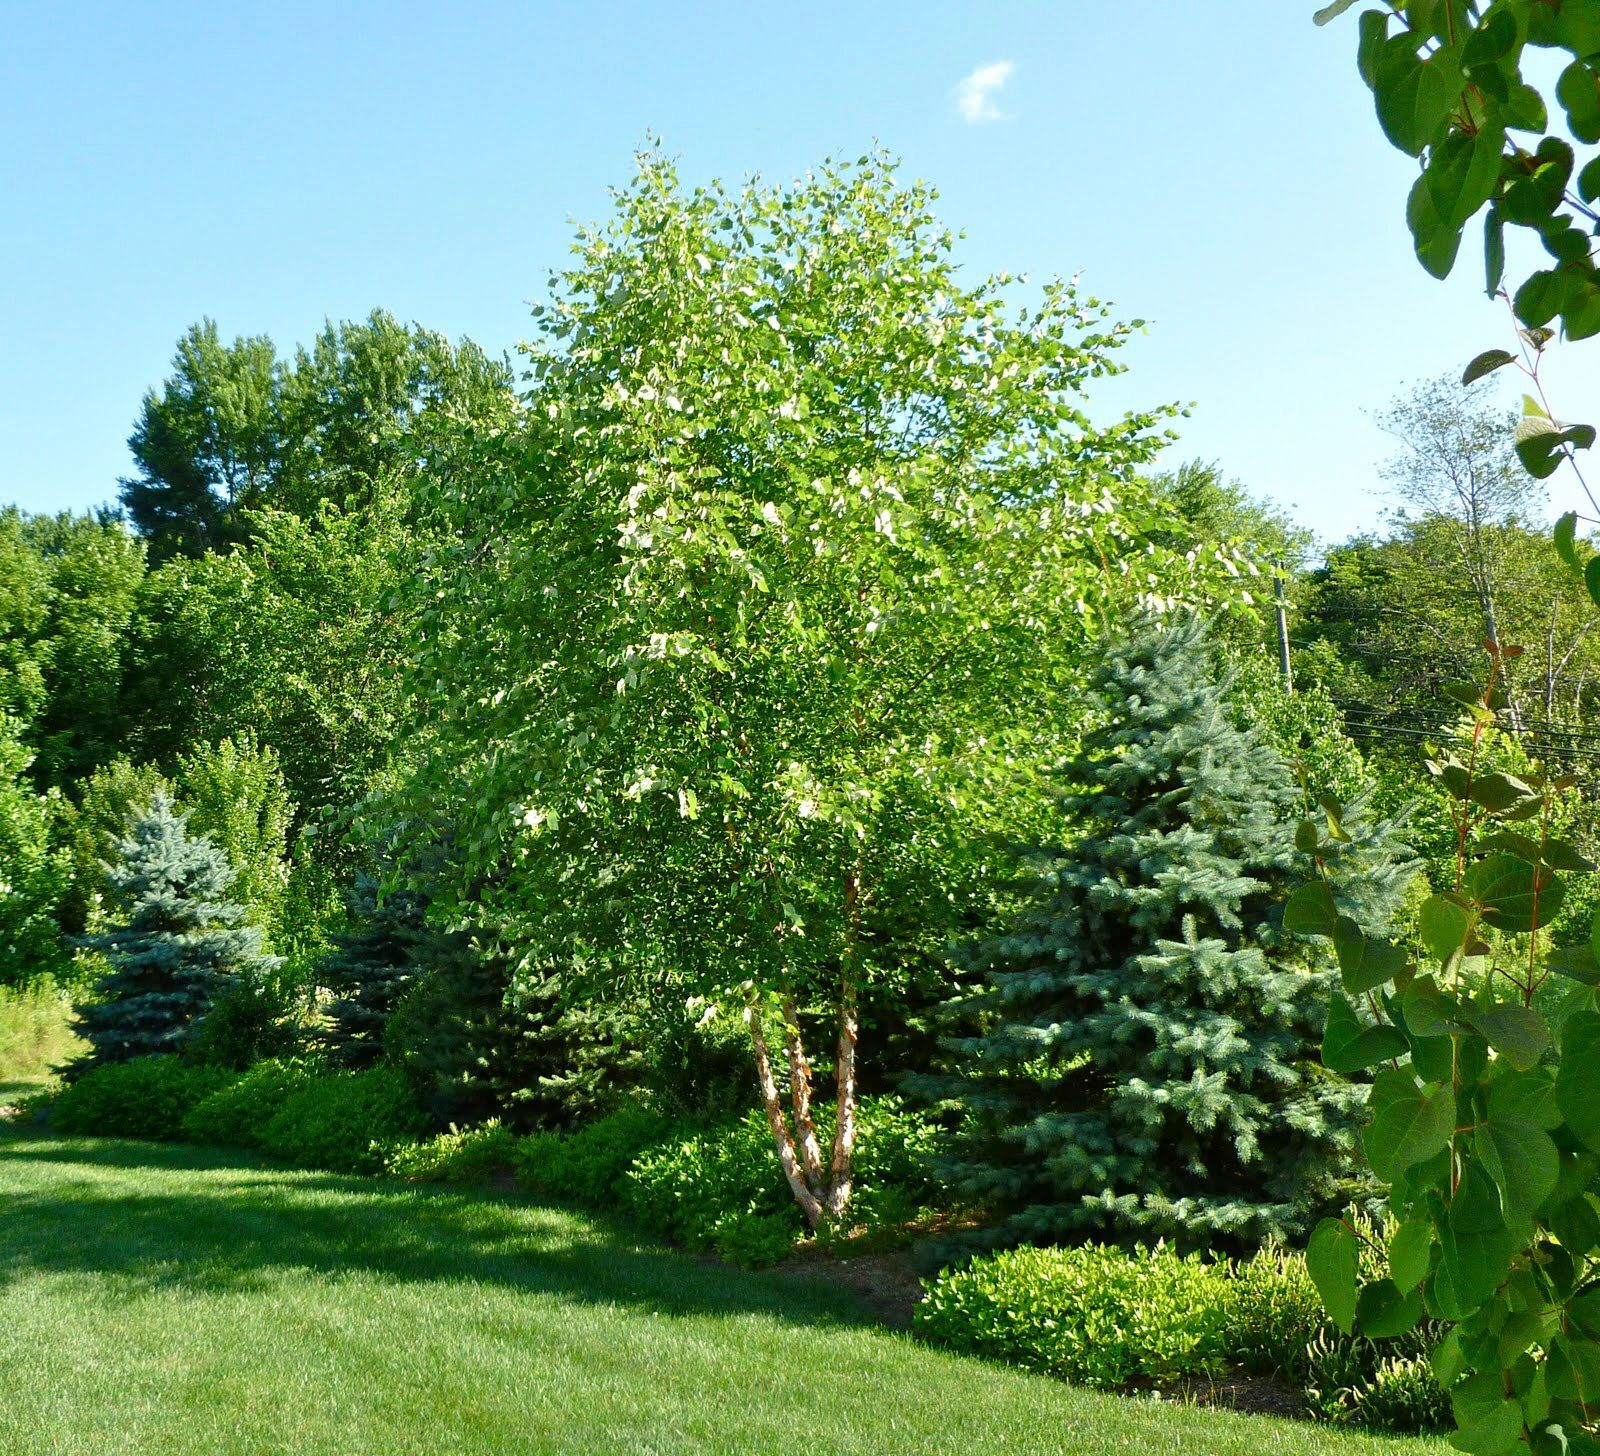 Mixed Border Of Deciduous And Evergreen Plants